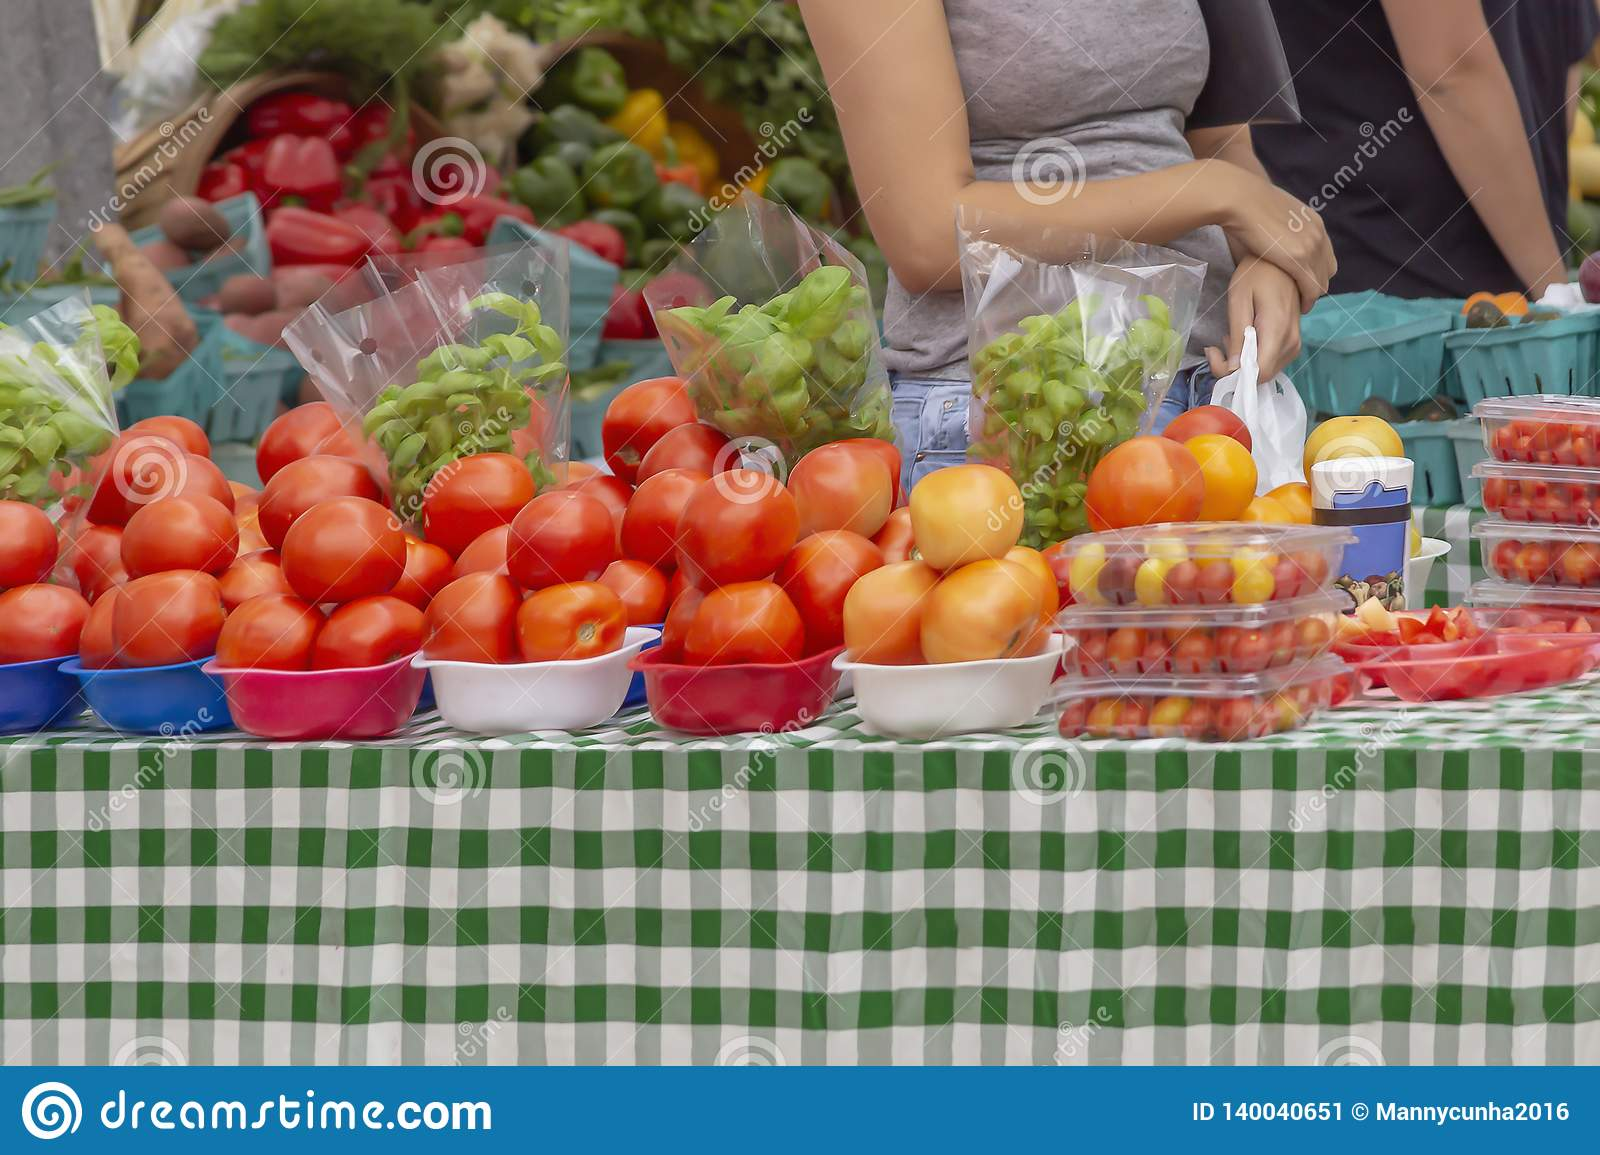 A lady stops at a table filled with vibrant red tomatoes at the outdoor market